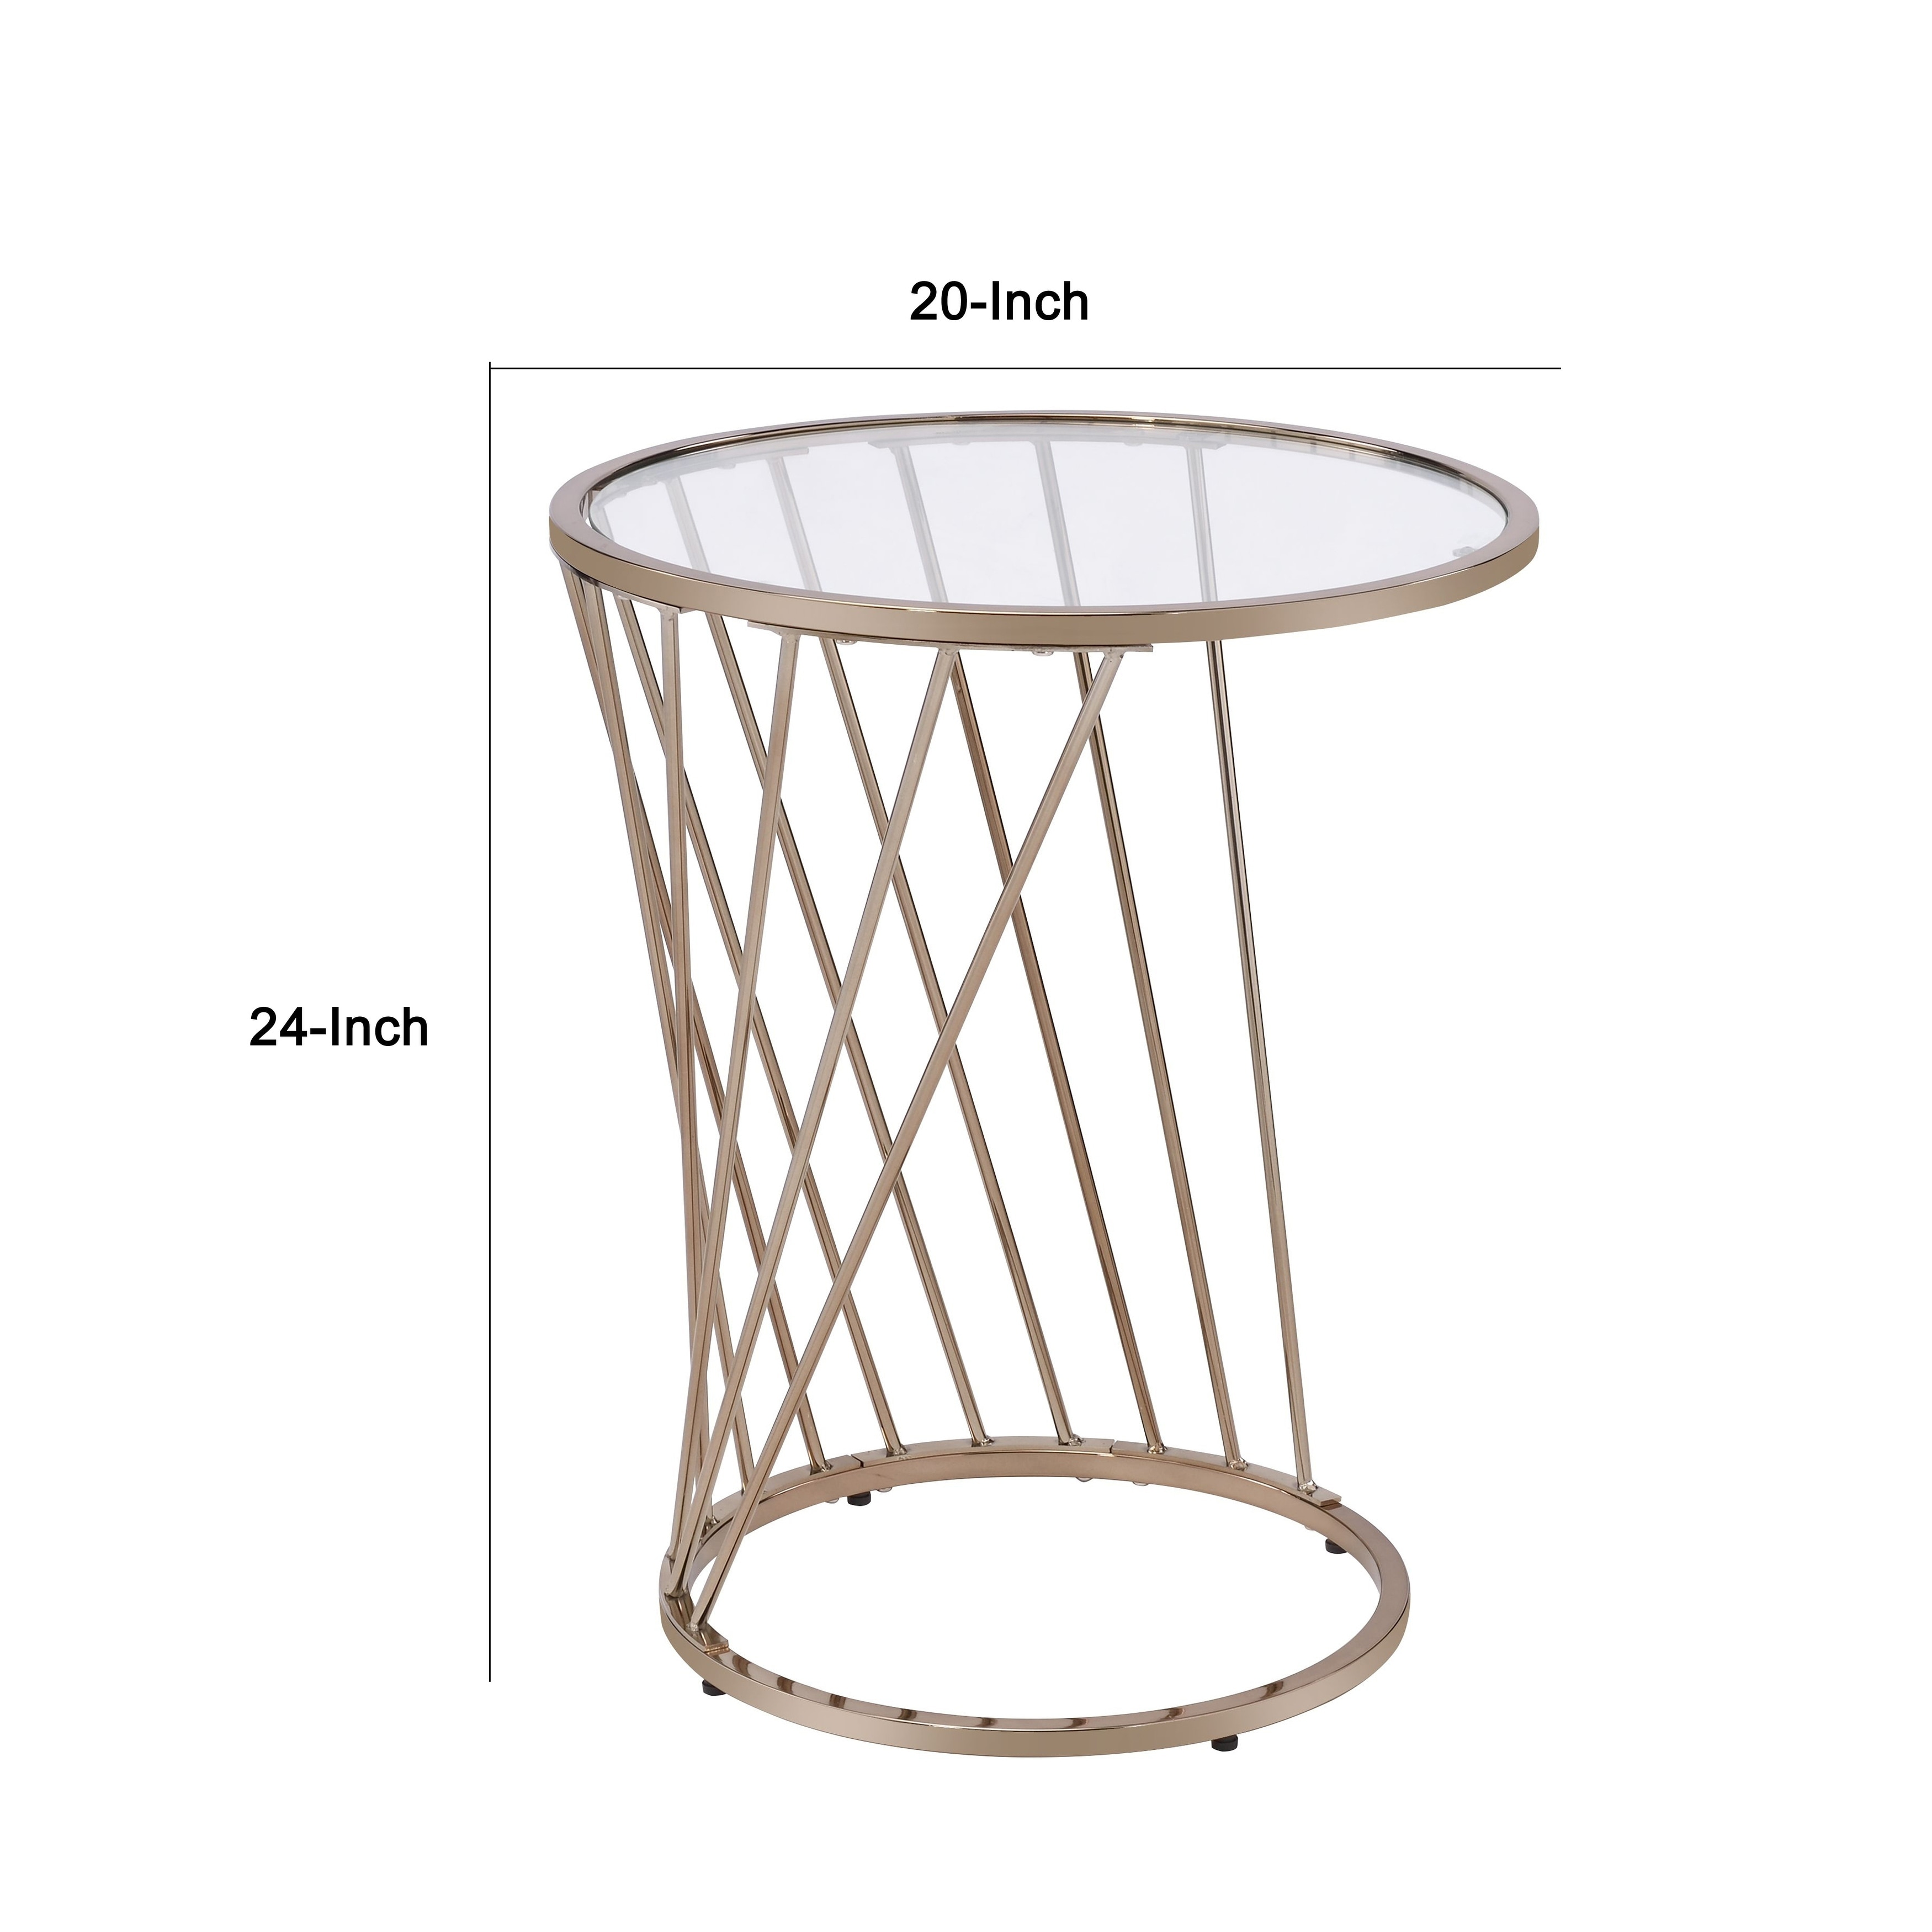 Table With Twisted Metal Base And Round